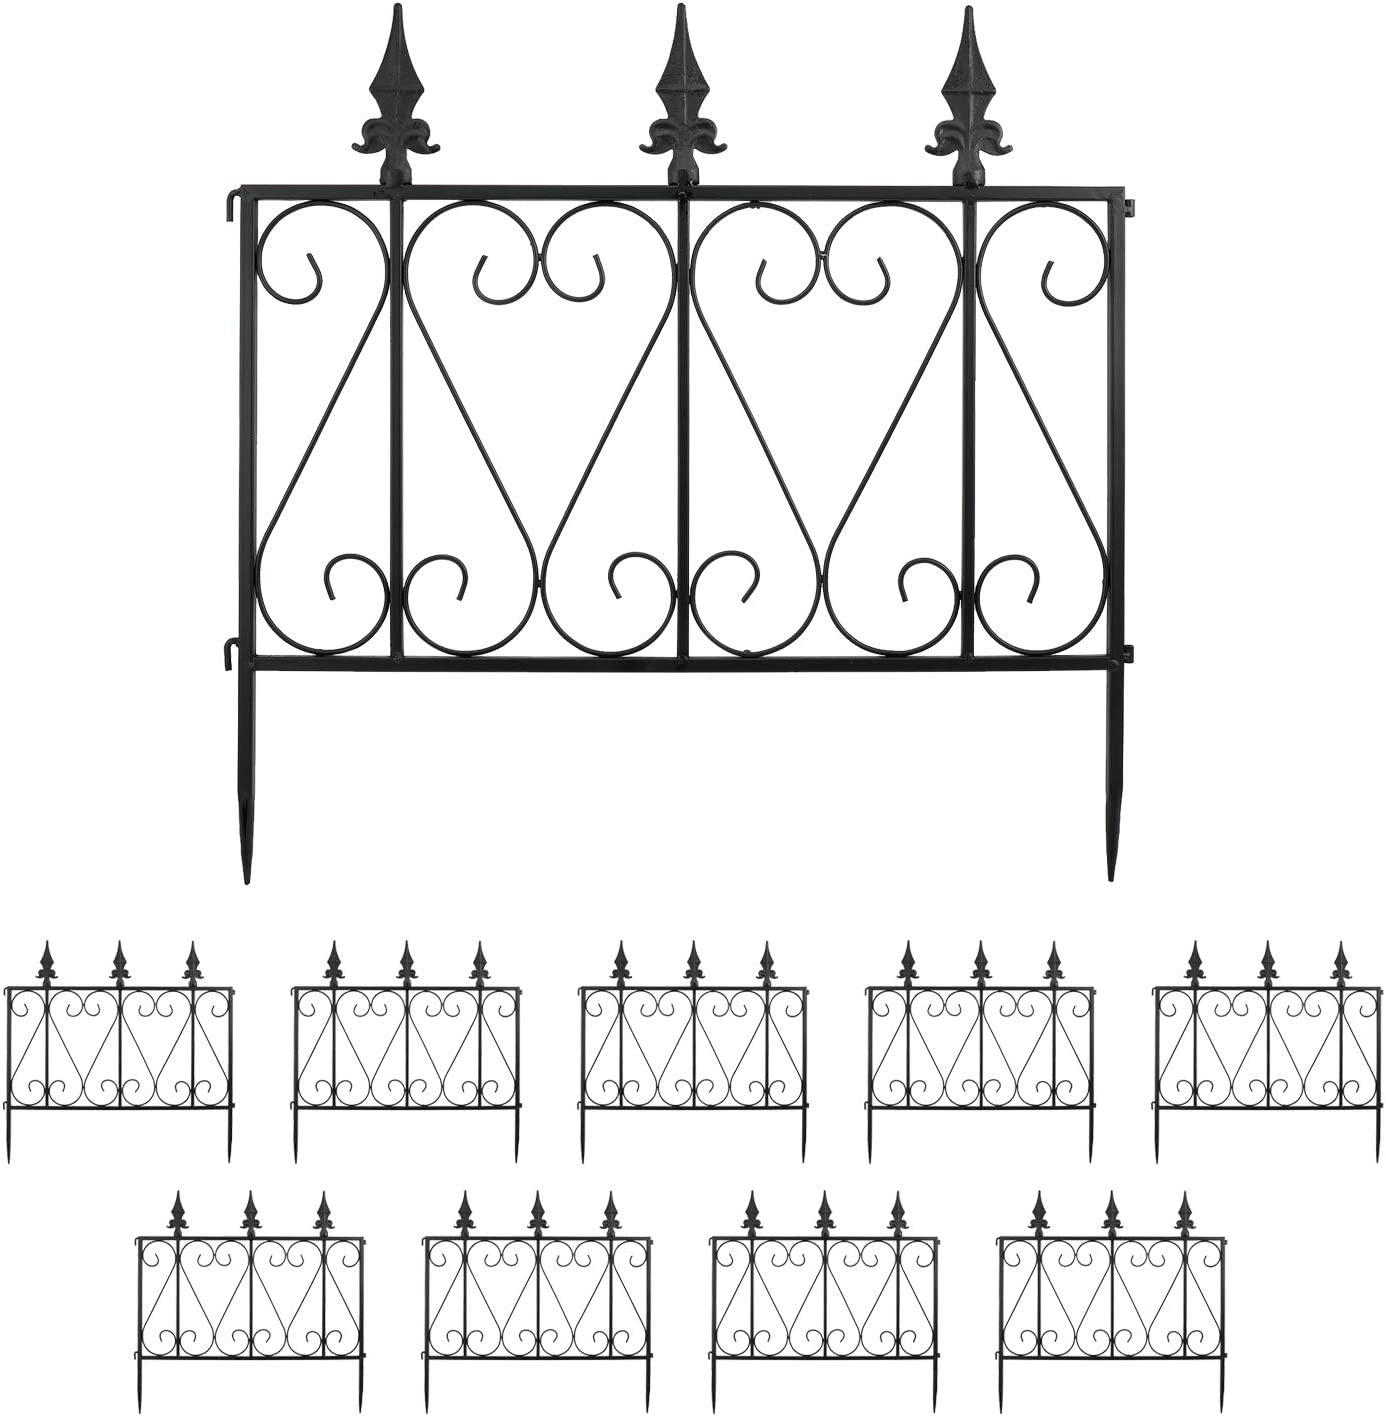 "Finderomend 10 Pack Garden Fence Rustproof Metal Wire Fencing Decorative Garden Fence Border for Landscape Patio Flower Bed, Pets, Barrier Gate Outdoor Black (24"" x 24)"